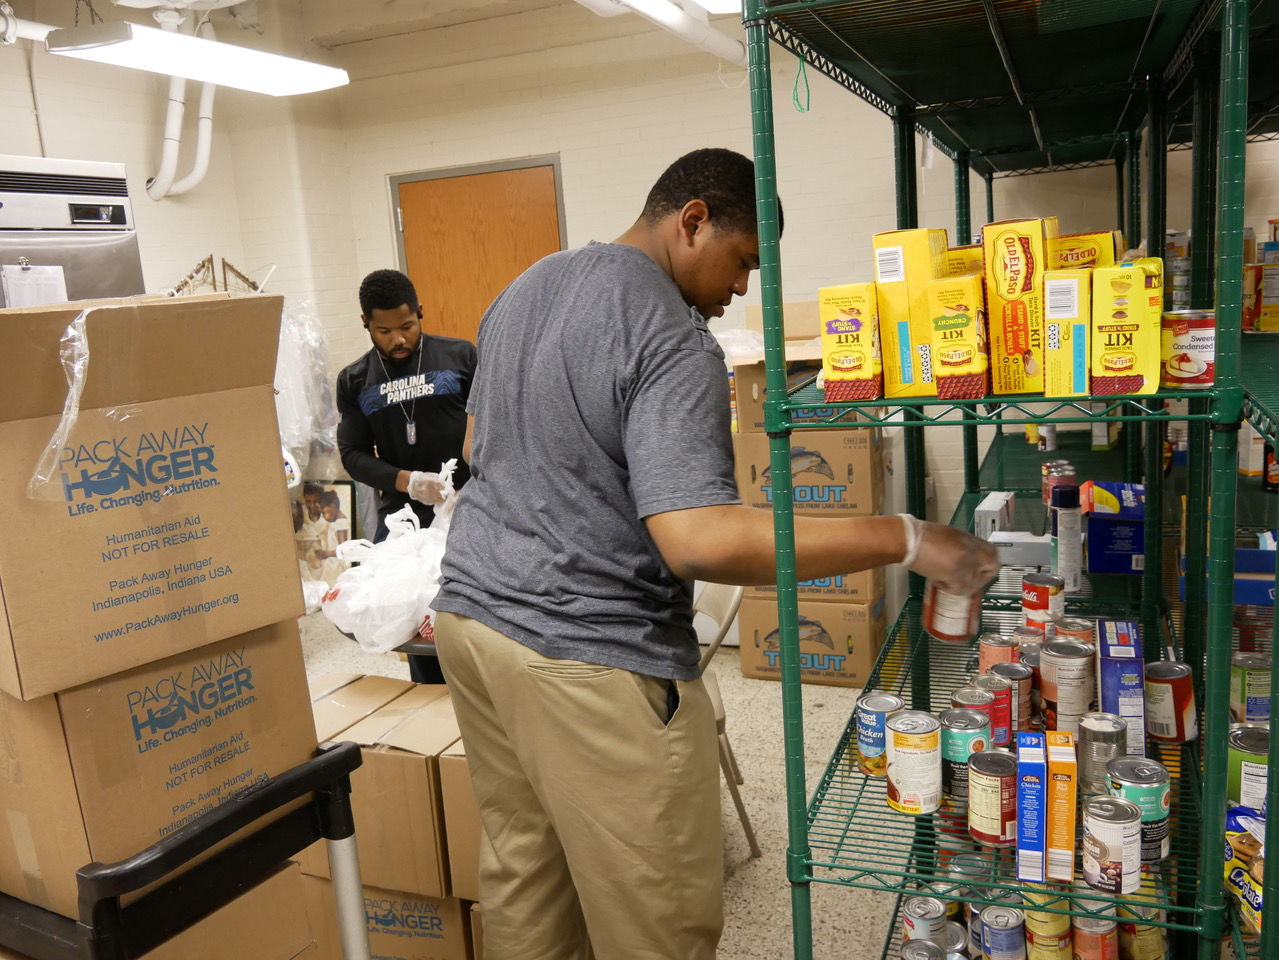 """<p></noscript>A food pantry at Edna Martin Christian Center provides necessities for Martindale Brightwood residents during COVID-19 health crisis. (Photo provided)</p> <p>""""><figcaption class="""